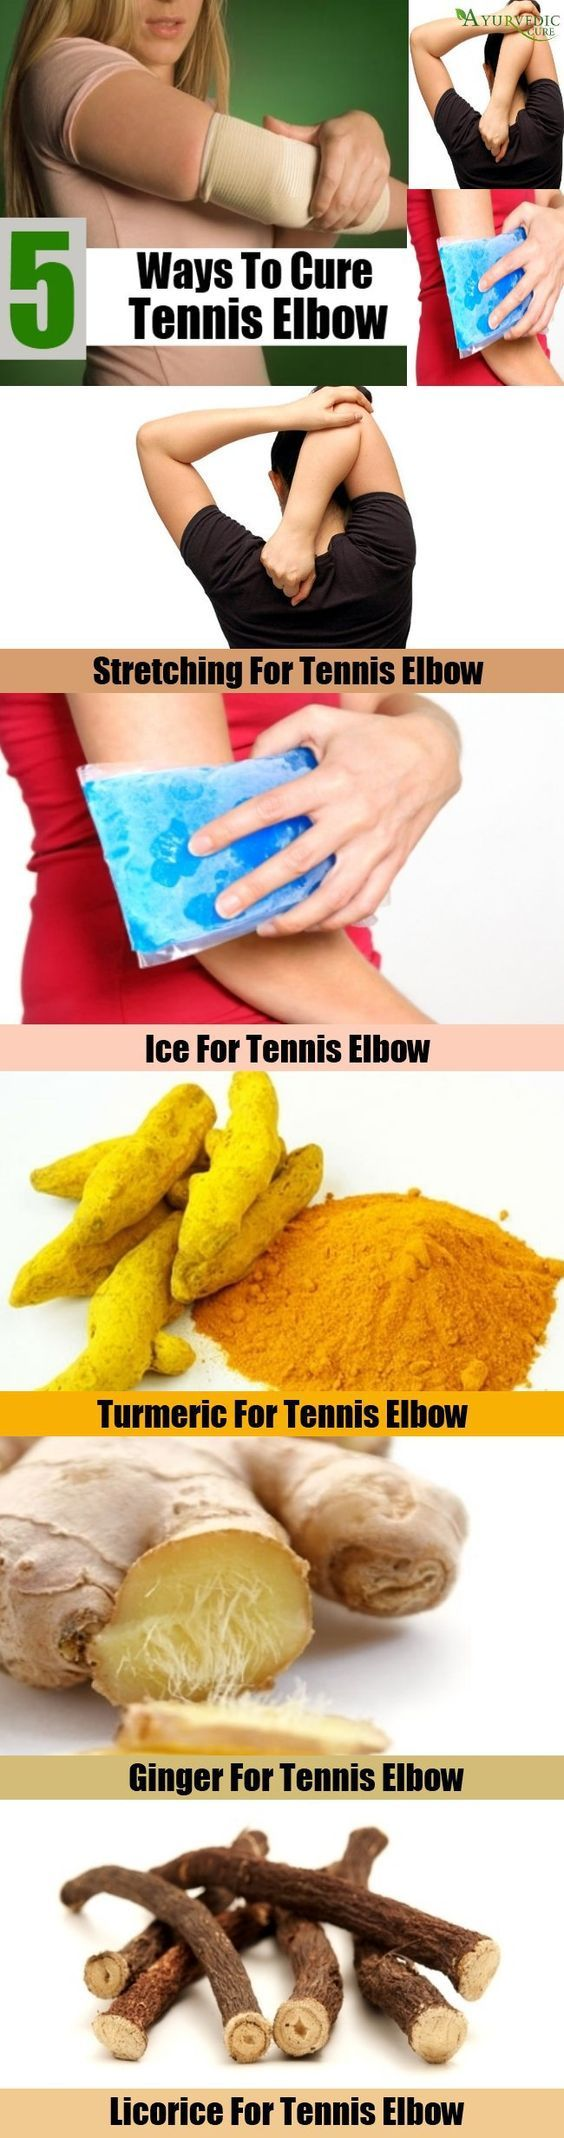 5 Tips On How To Cure Tennis Elbow